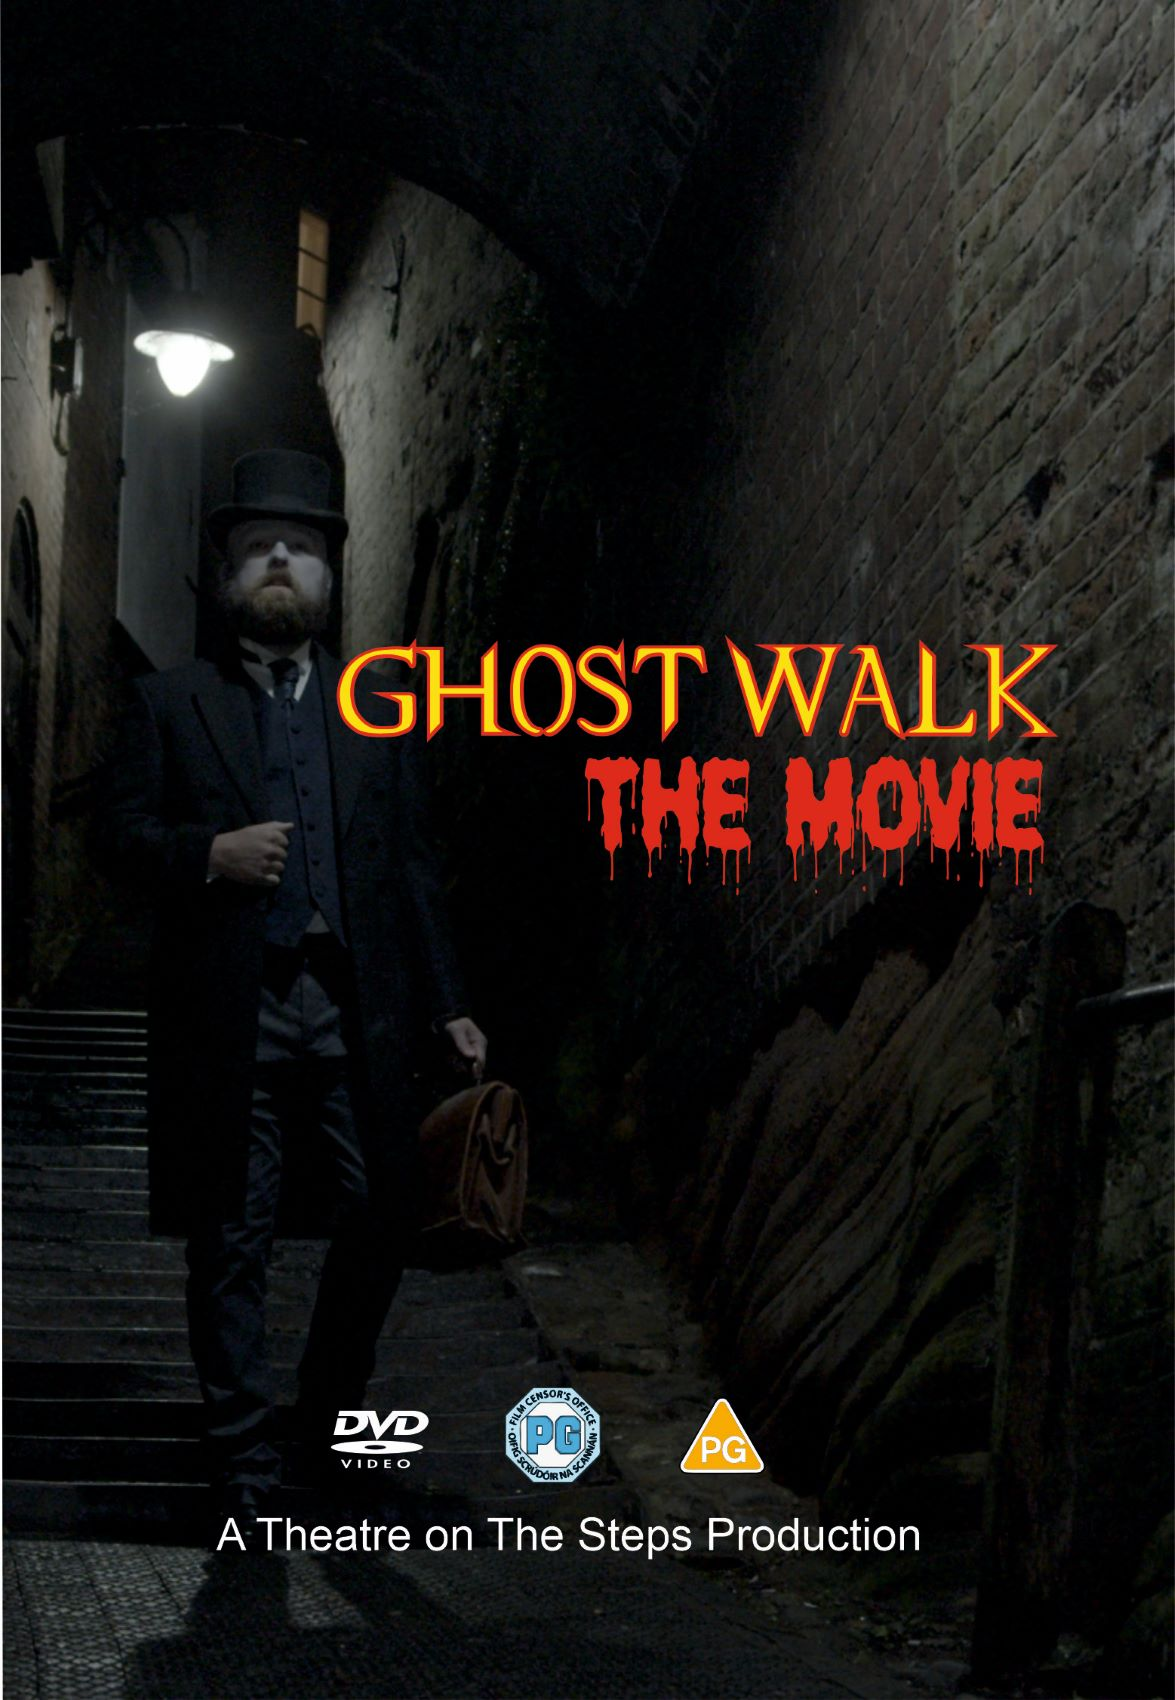 GHOST WALK the movie -PRE-ORDER NOW